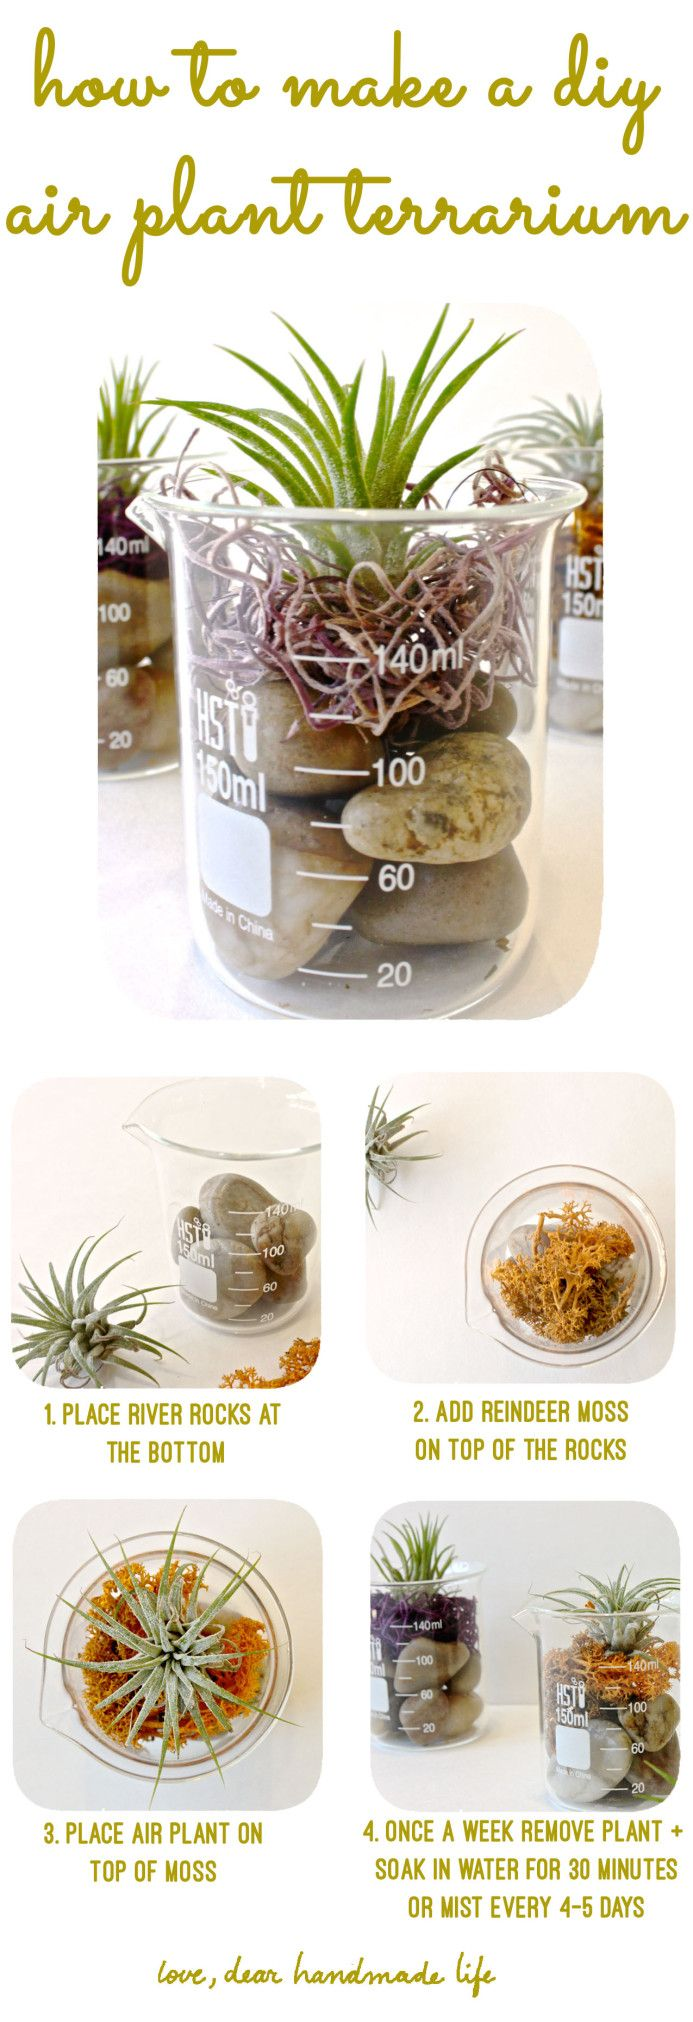 How to Make a DIY Air Plant Terrarium - Dear Handmade LIfe